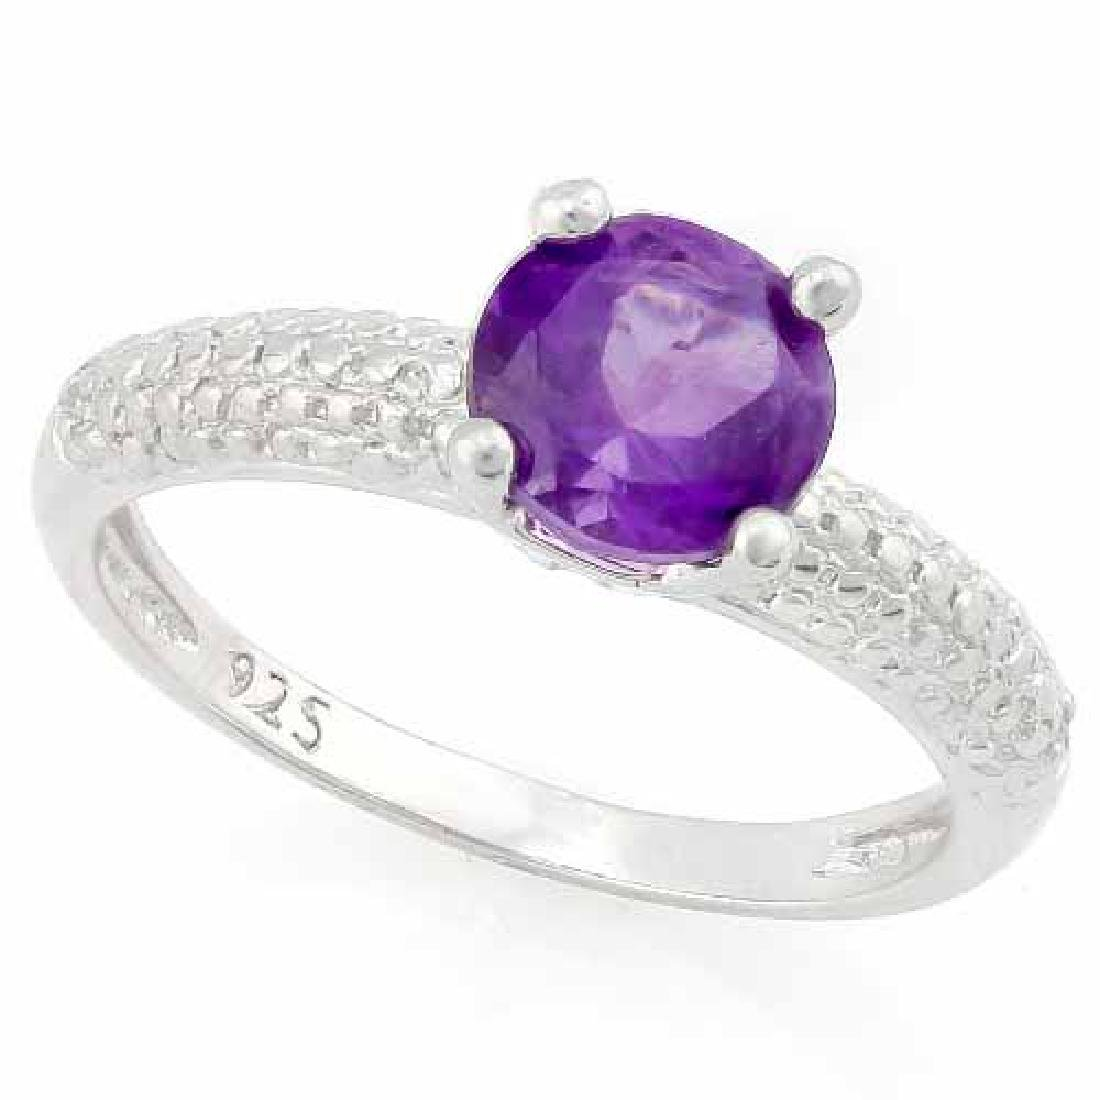 1 2/5 CARAT AMETHYST & DIAMOND 925 STERLING SILVER RING